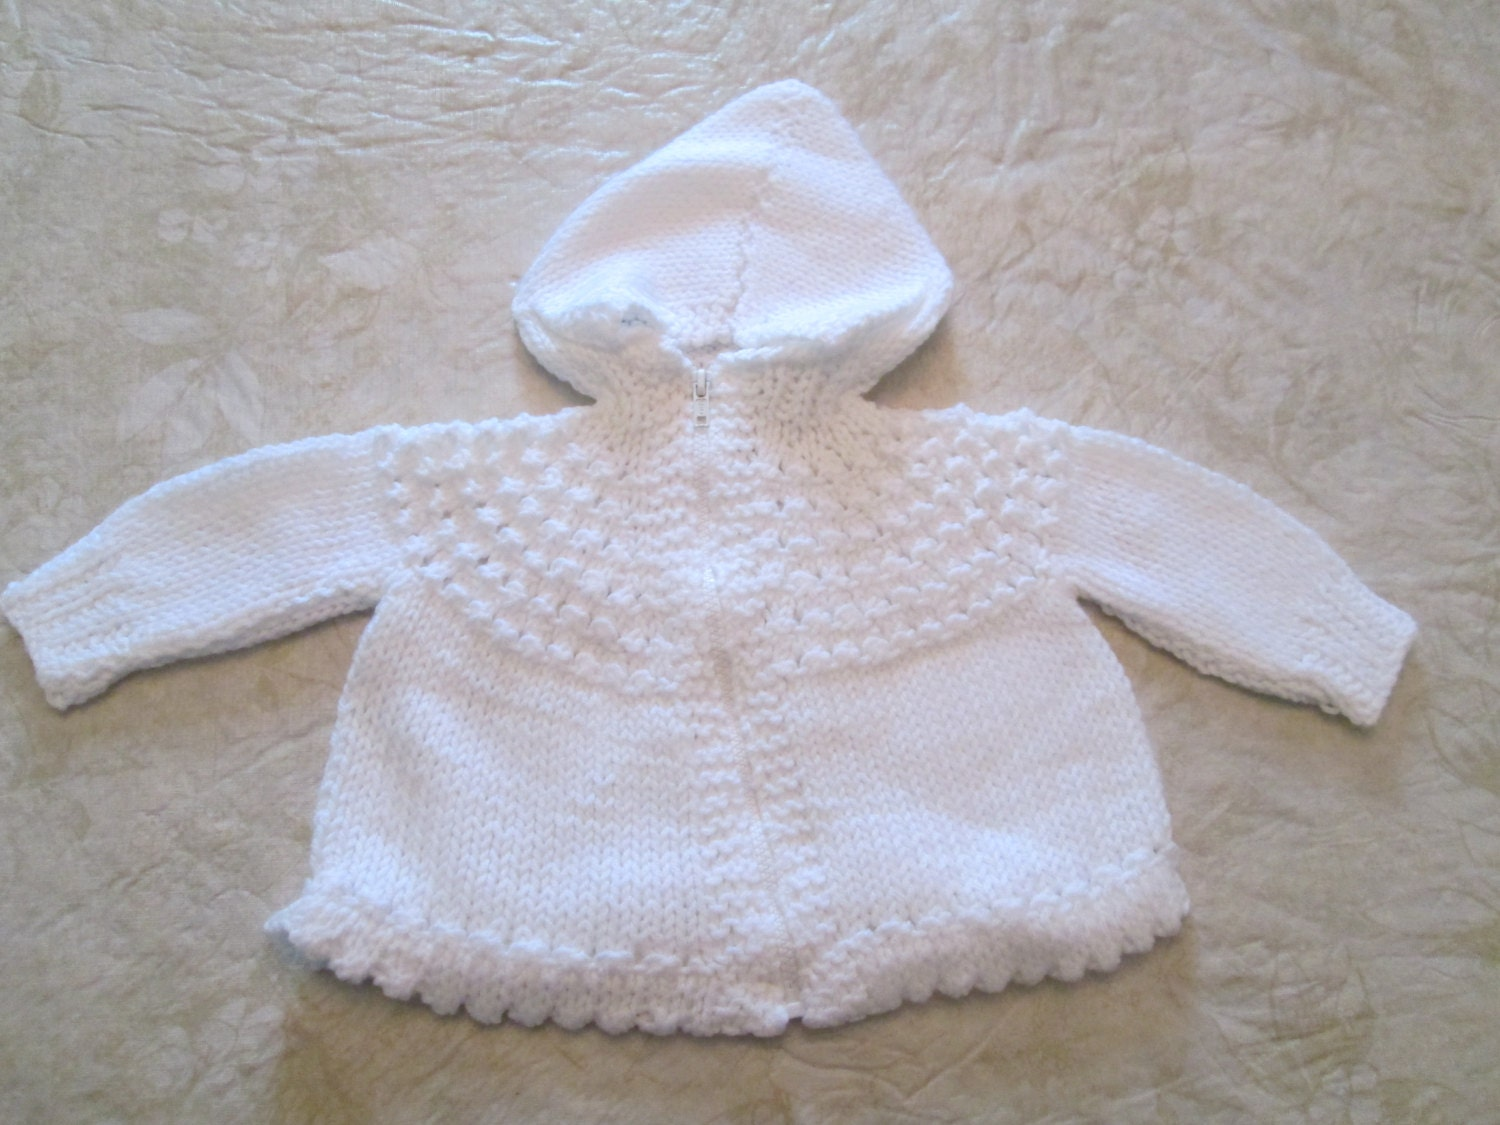 Knitting Pattern For Baby Sweater With Zipper In The Back : Hand Knitted Hooded Baby Sweater with Front Zipper Closure